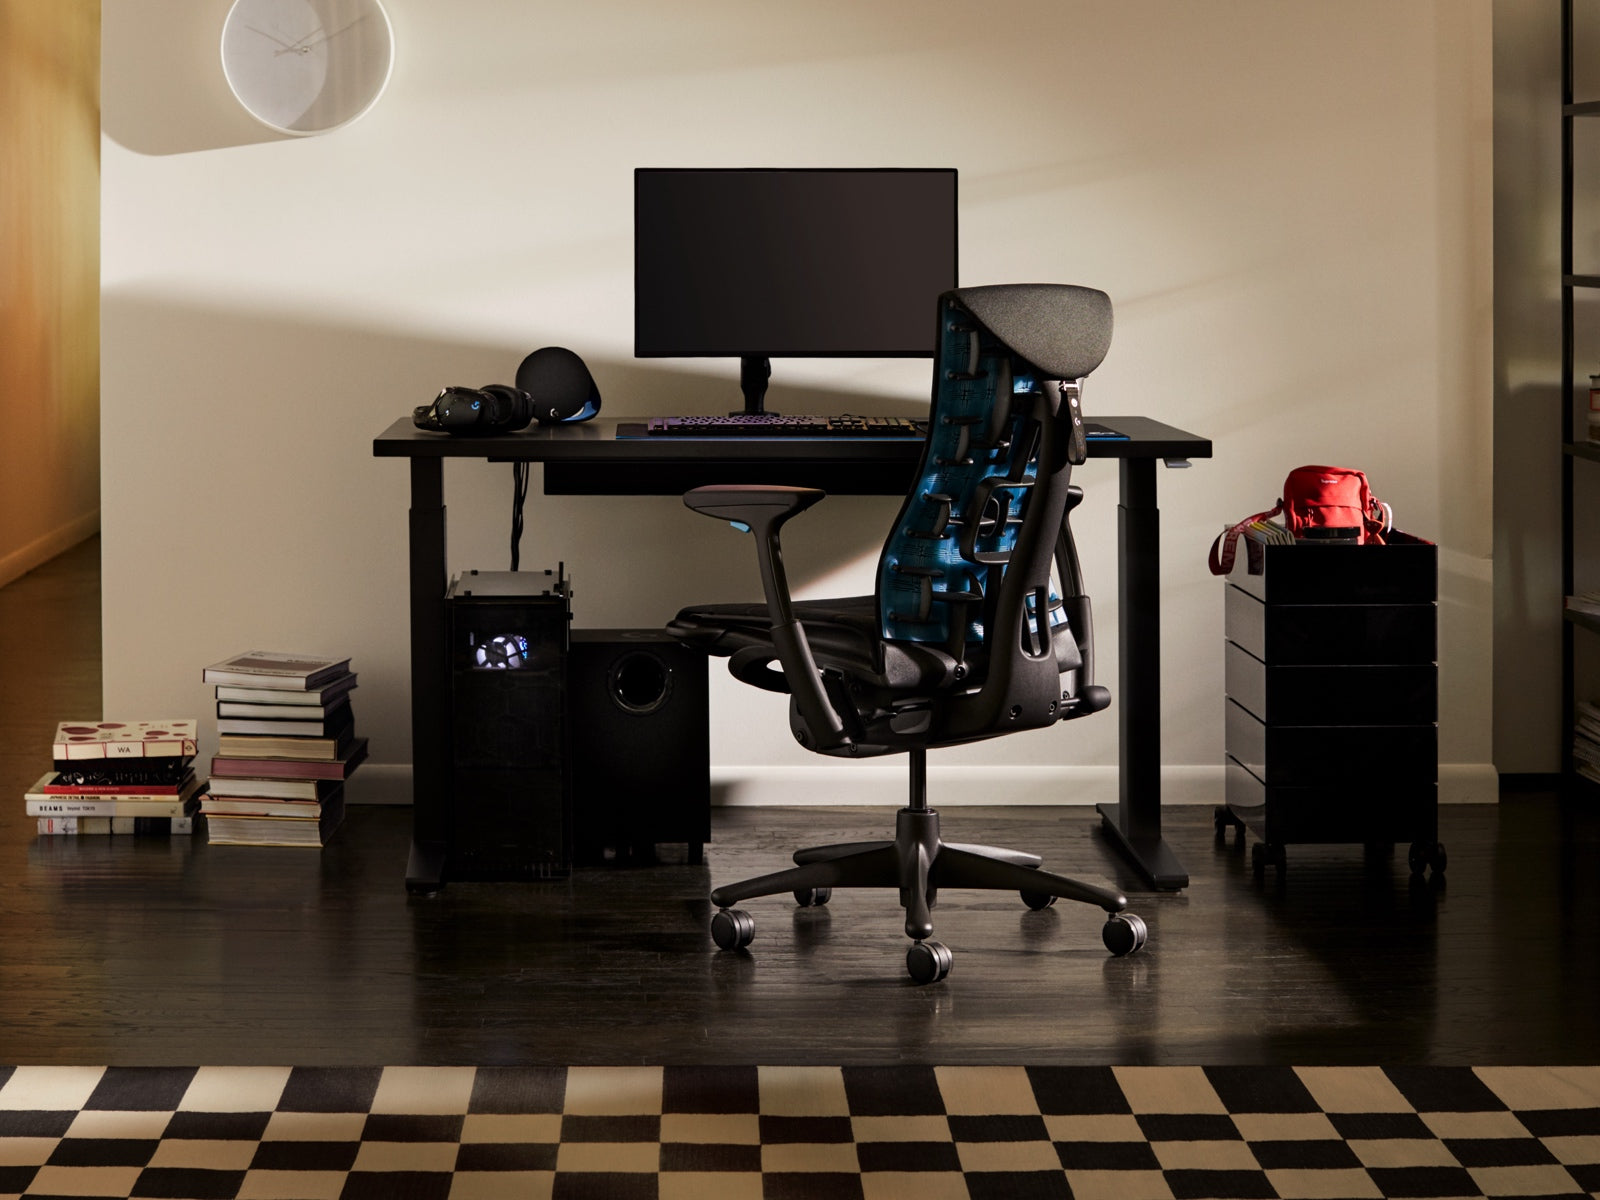 The full set-up from Herman Miller and Logitech G together, including the Embody Gaming Chair, the Nevi Gaming Desk and Ollin Monitor Arm, with additional gaming accessories – all in front of a built-in bookshelf in a residential setting.